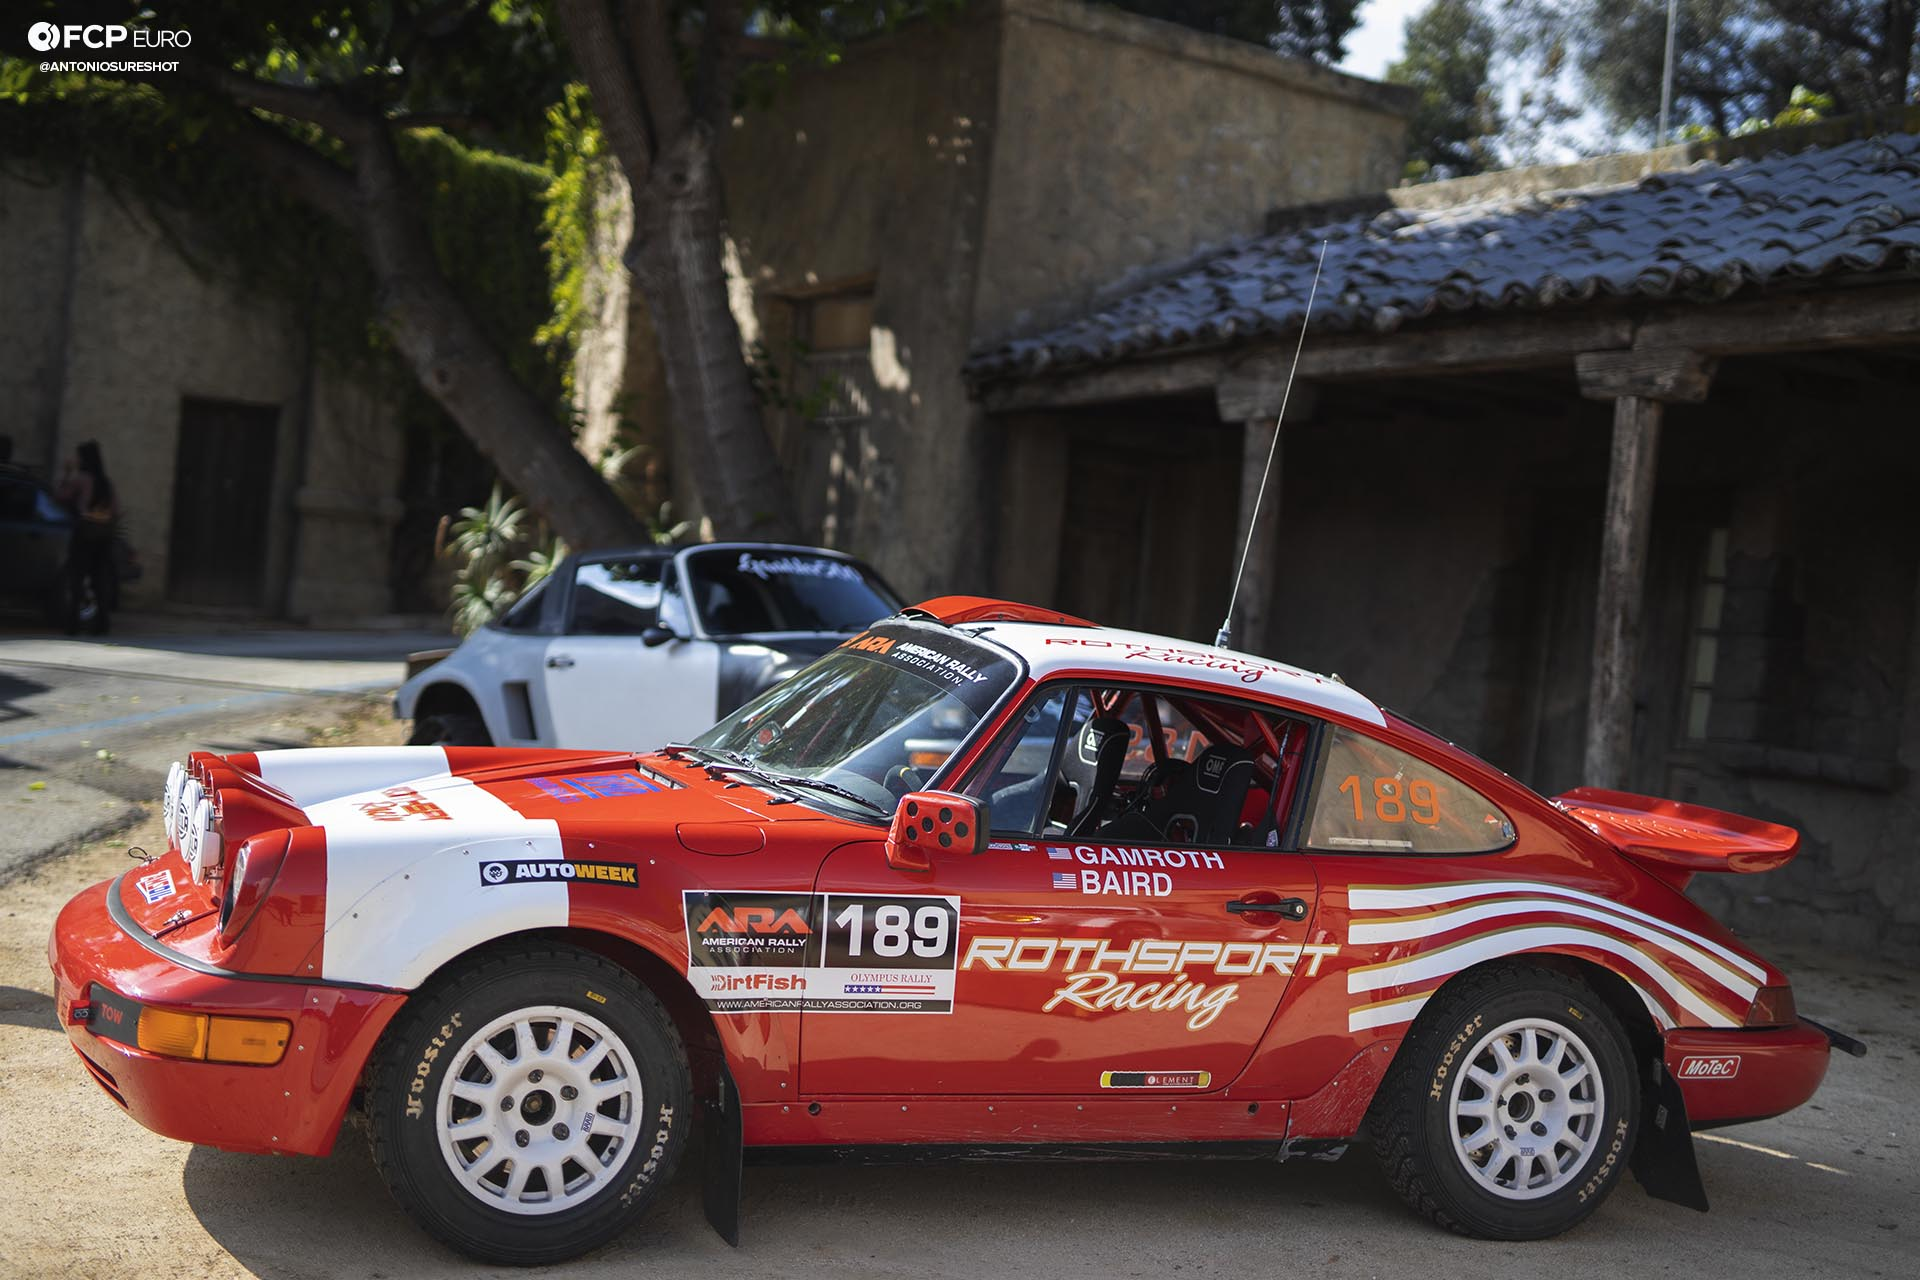 Hoosier Rally tires Safari 964 Rothsport Racing Porsche 911 Rally Car Mexican 1000 Luftgekuhlt Olympus Rally